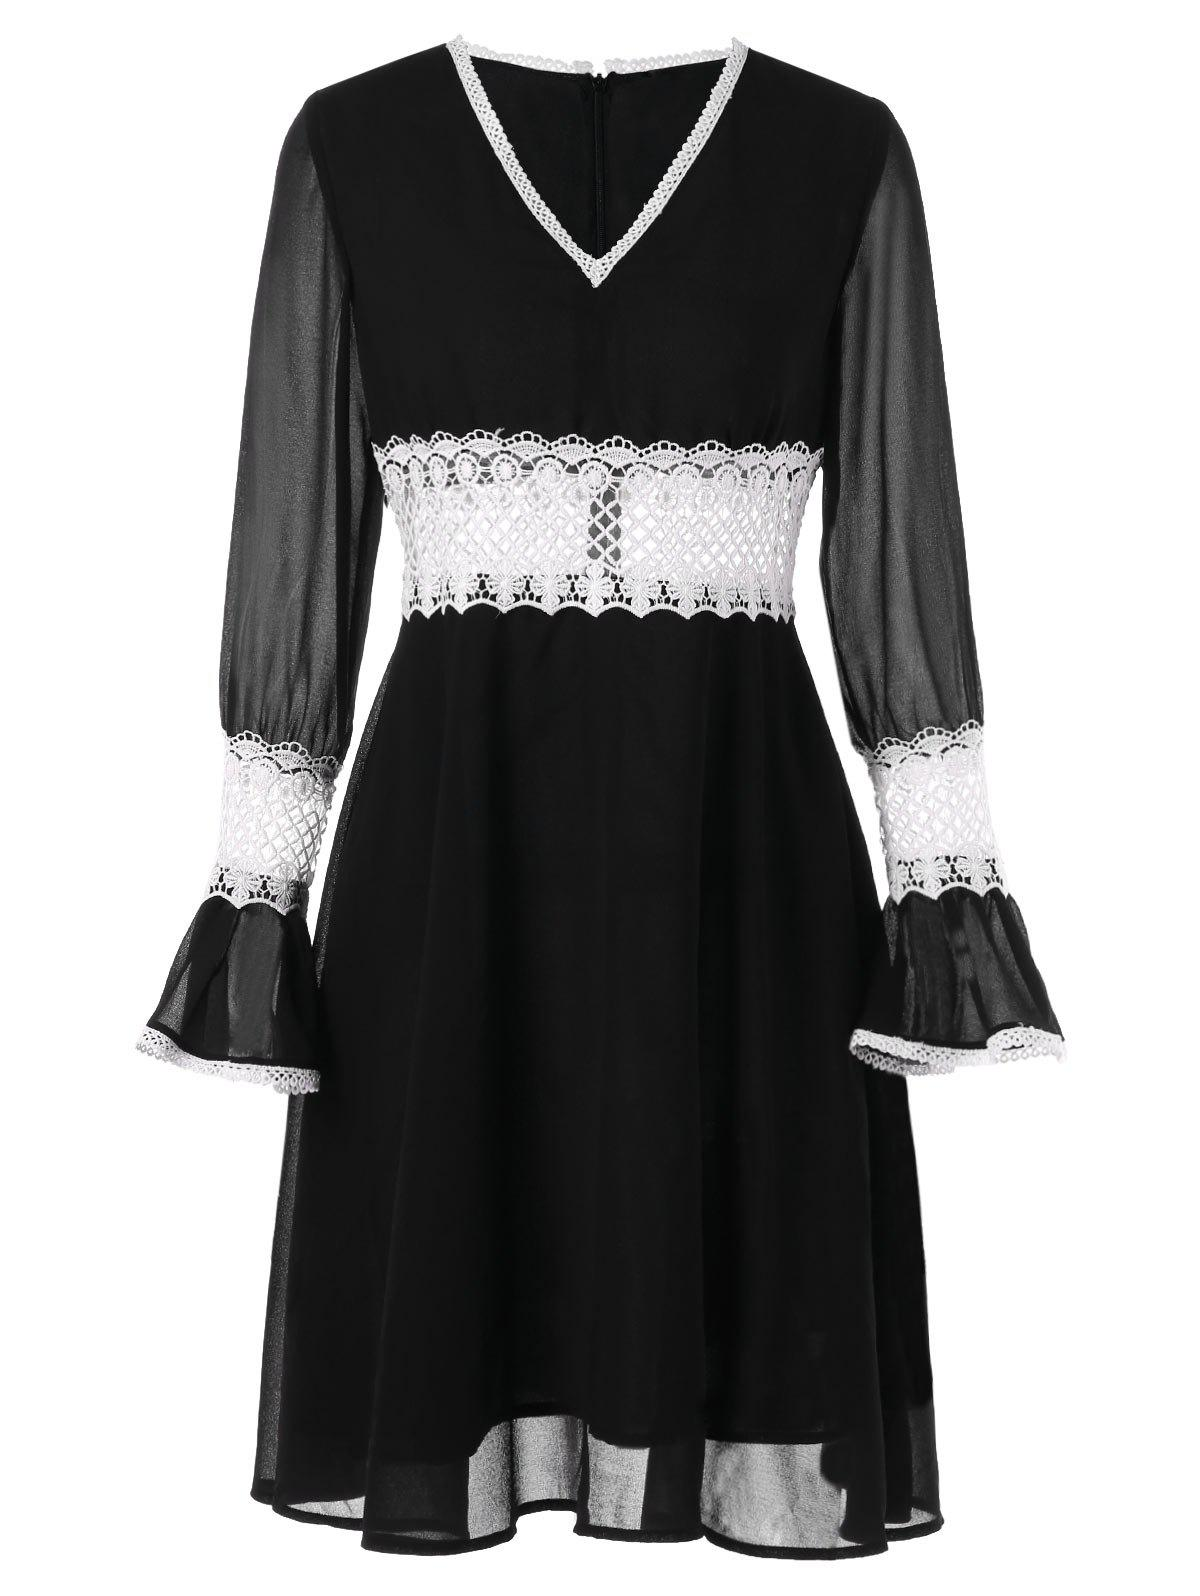 Contrast Lace Panel Chiffon Flare Dress - BLACK M